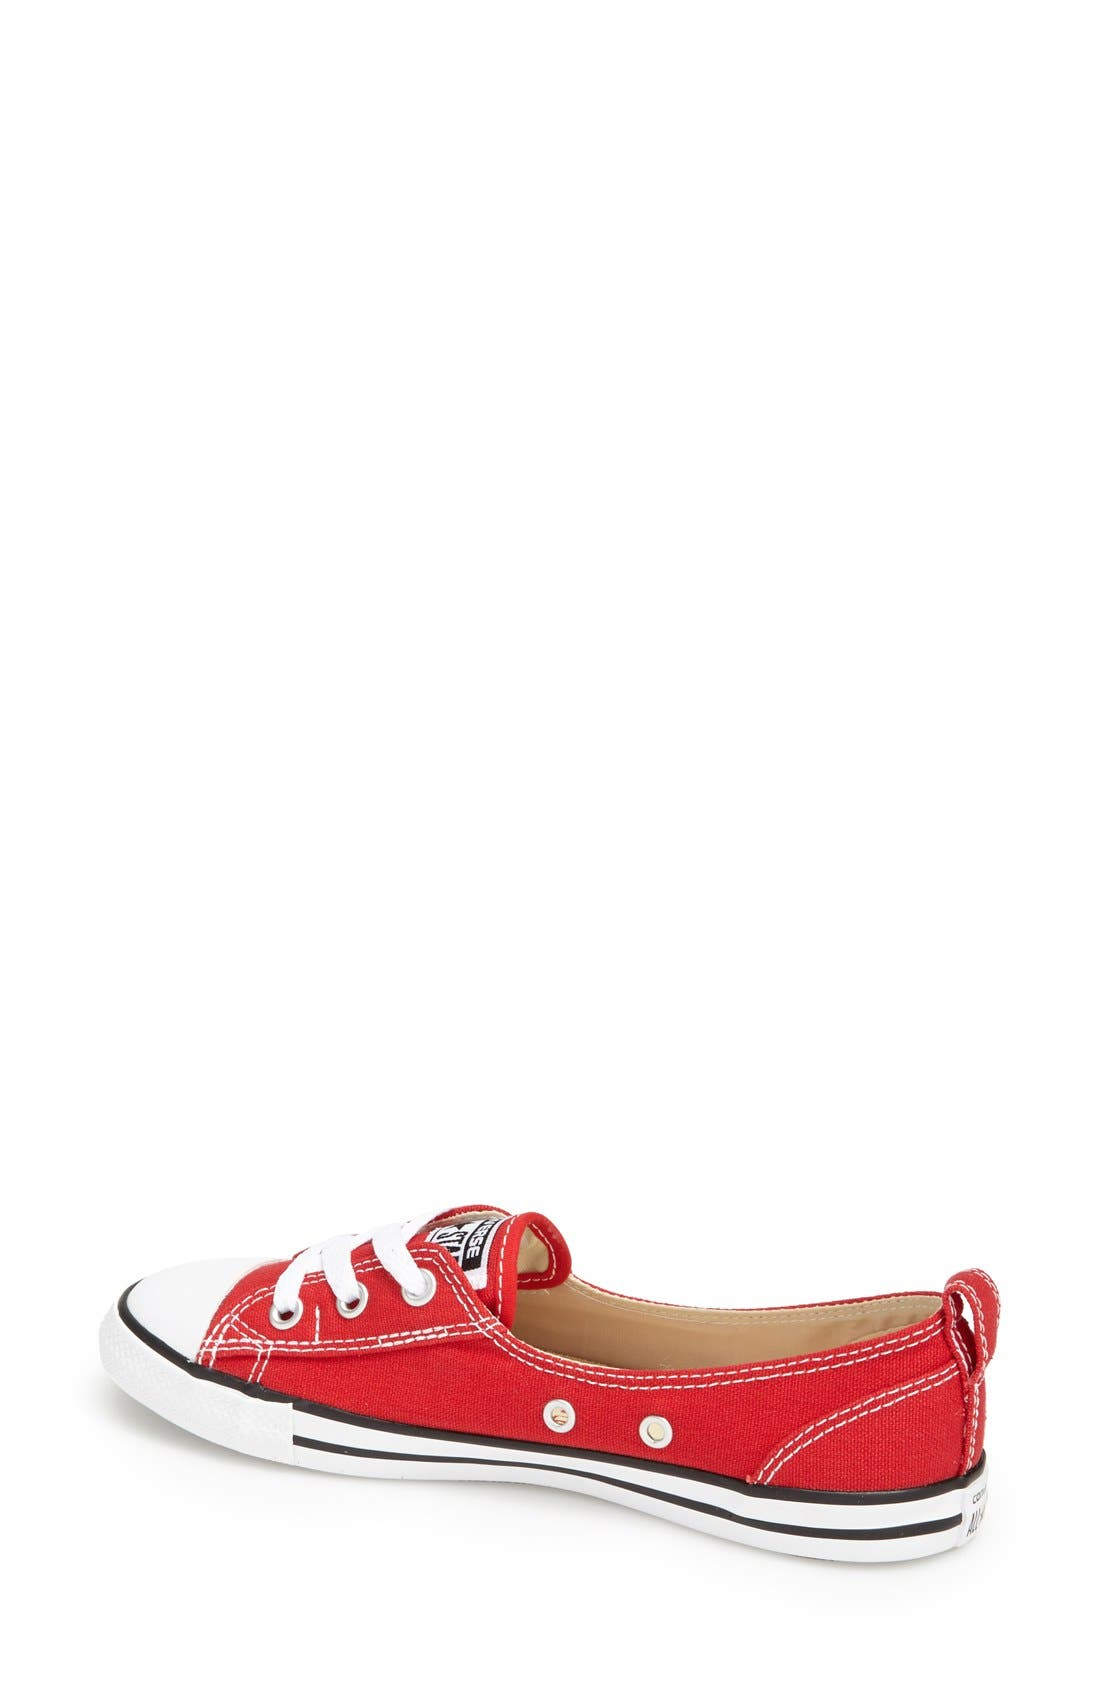 ,                             Chuck Taylor<sup>®</sup> All Star<sup>®</sup> Ballet Canvas Sneaker,                             Alternate thumbnail 24, color,                             600